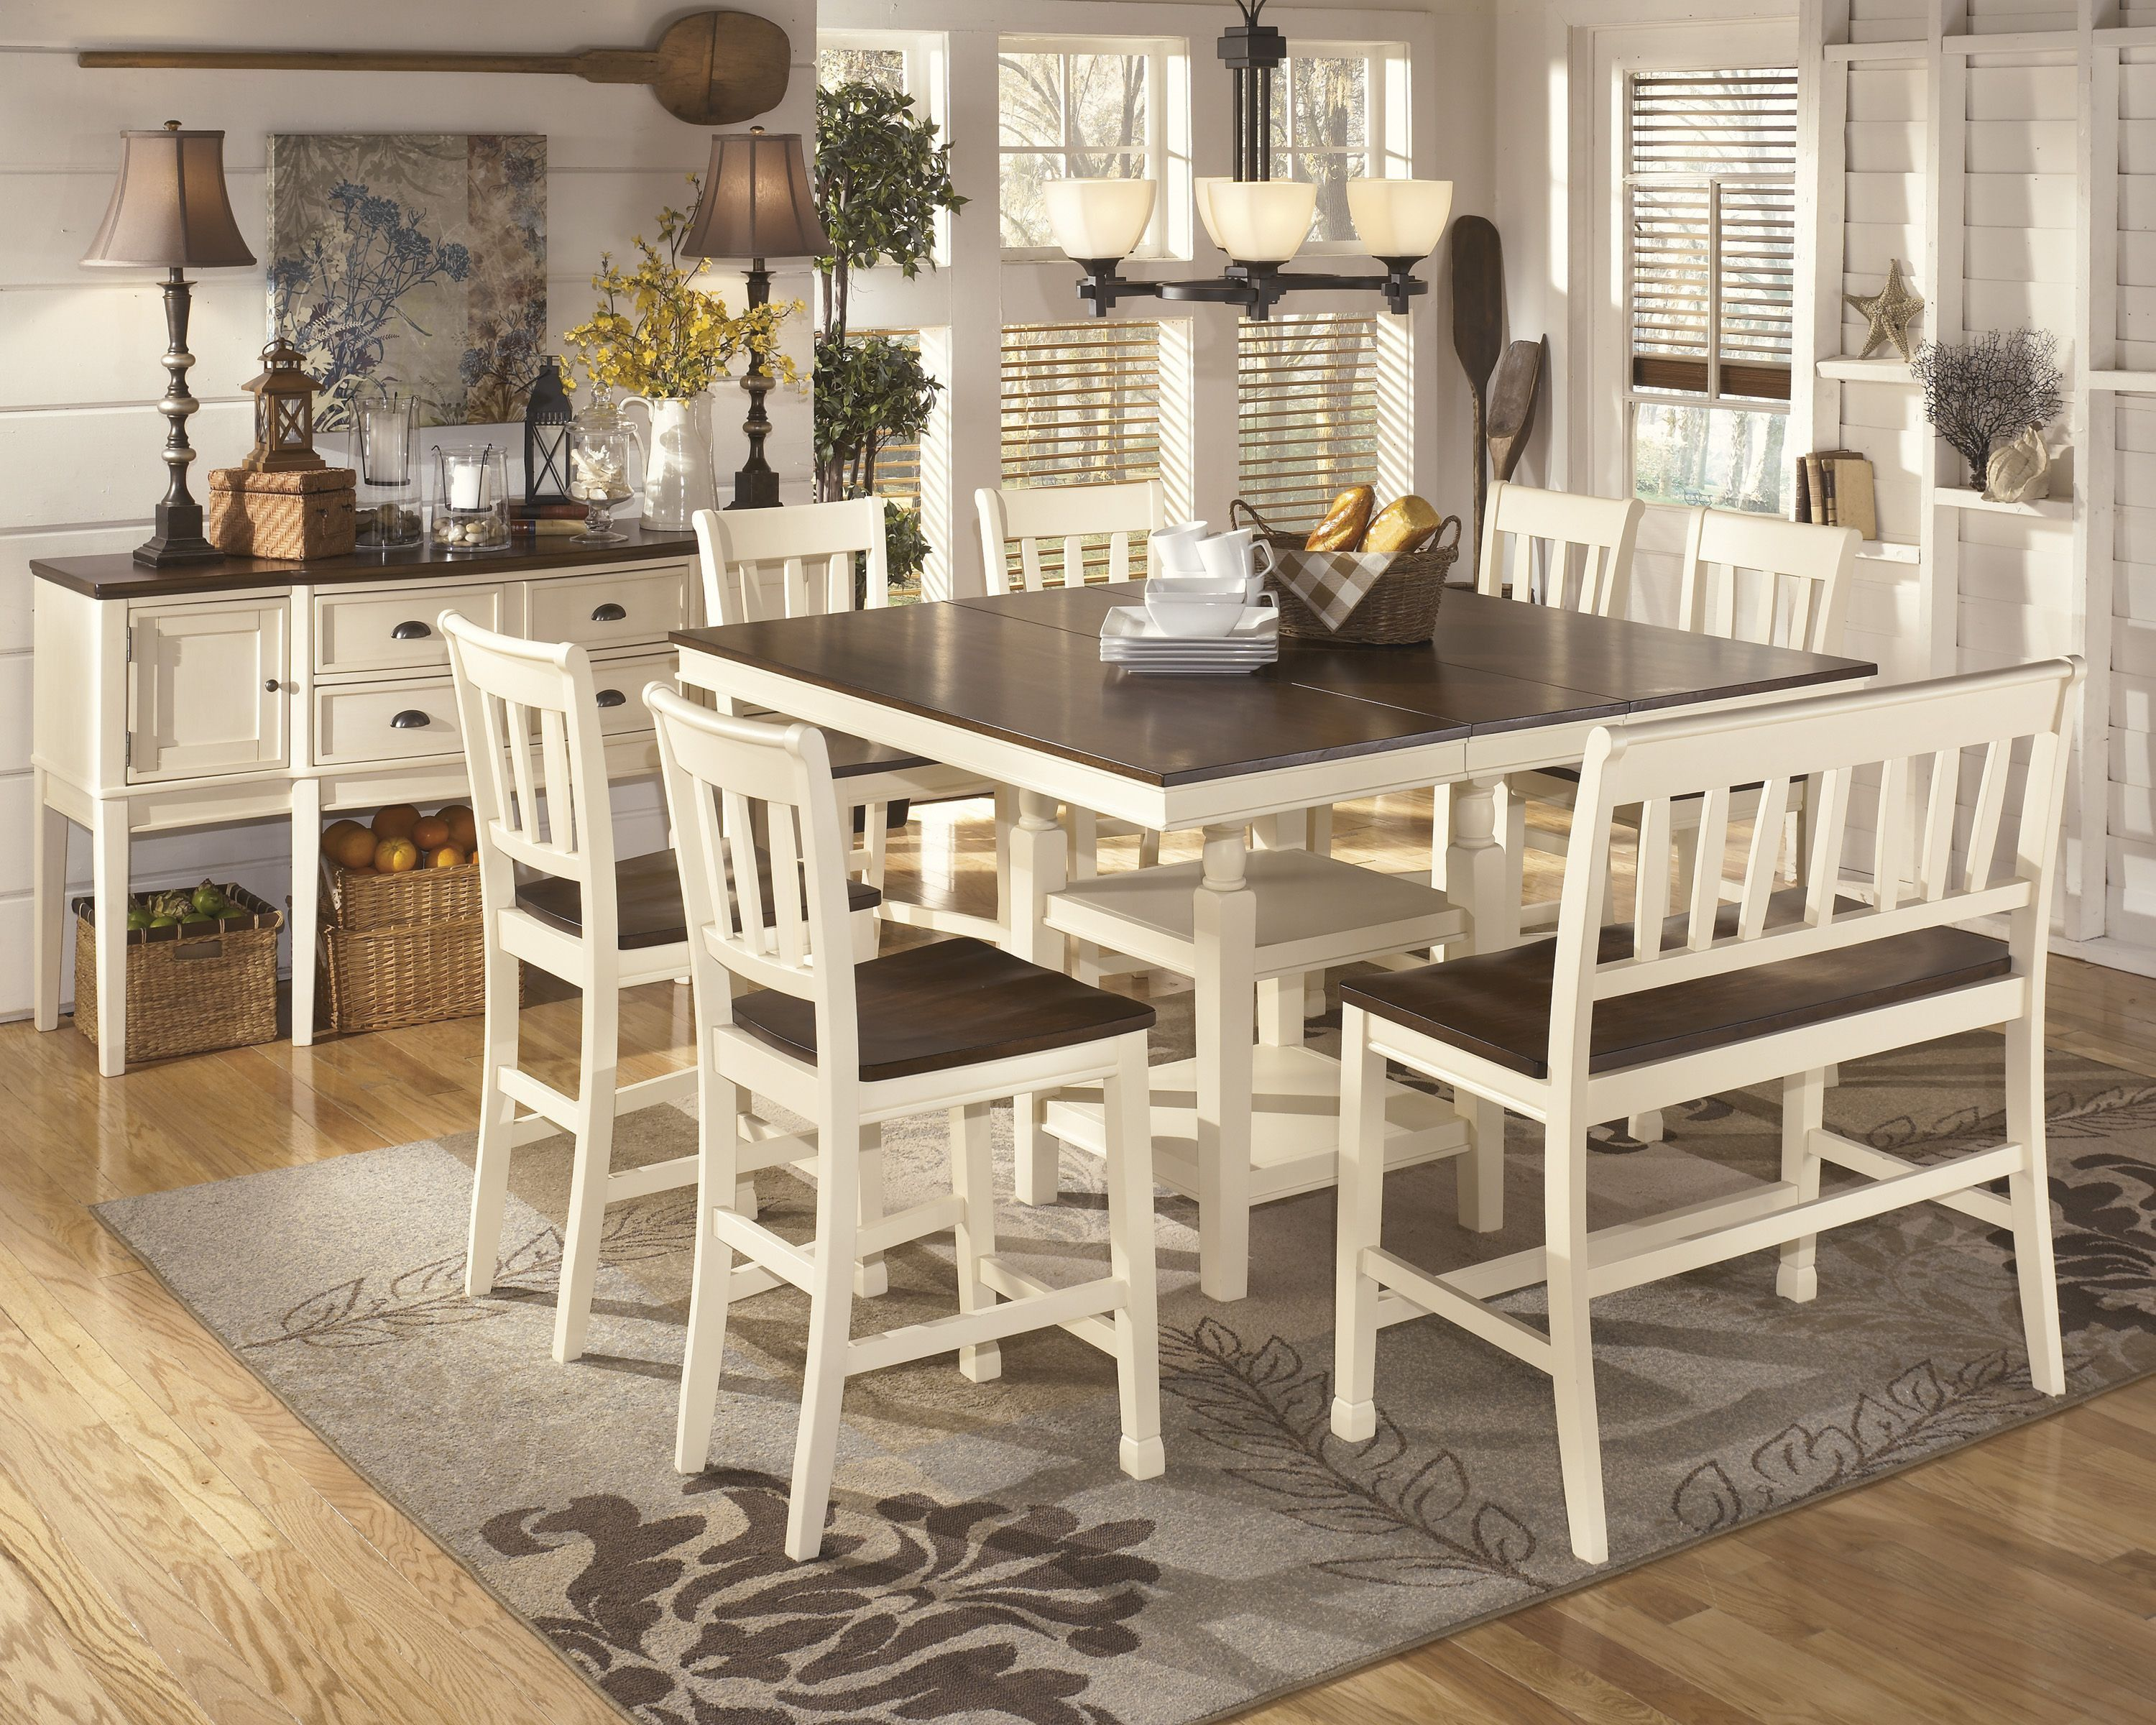 Unique Farmhouse Kitchen Set Counter height dining room